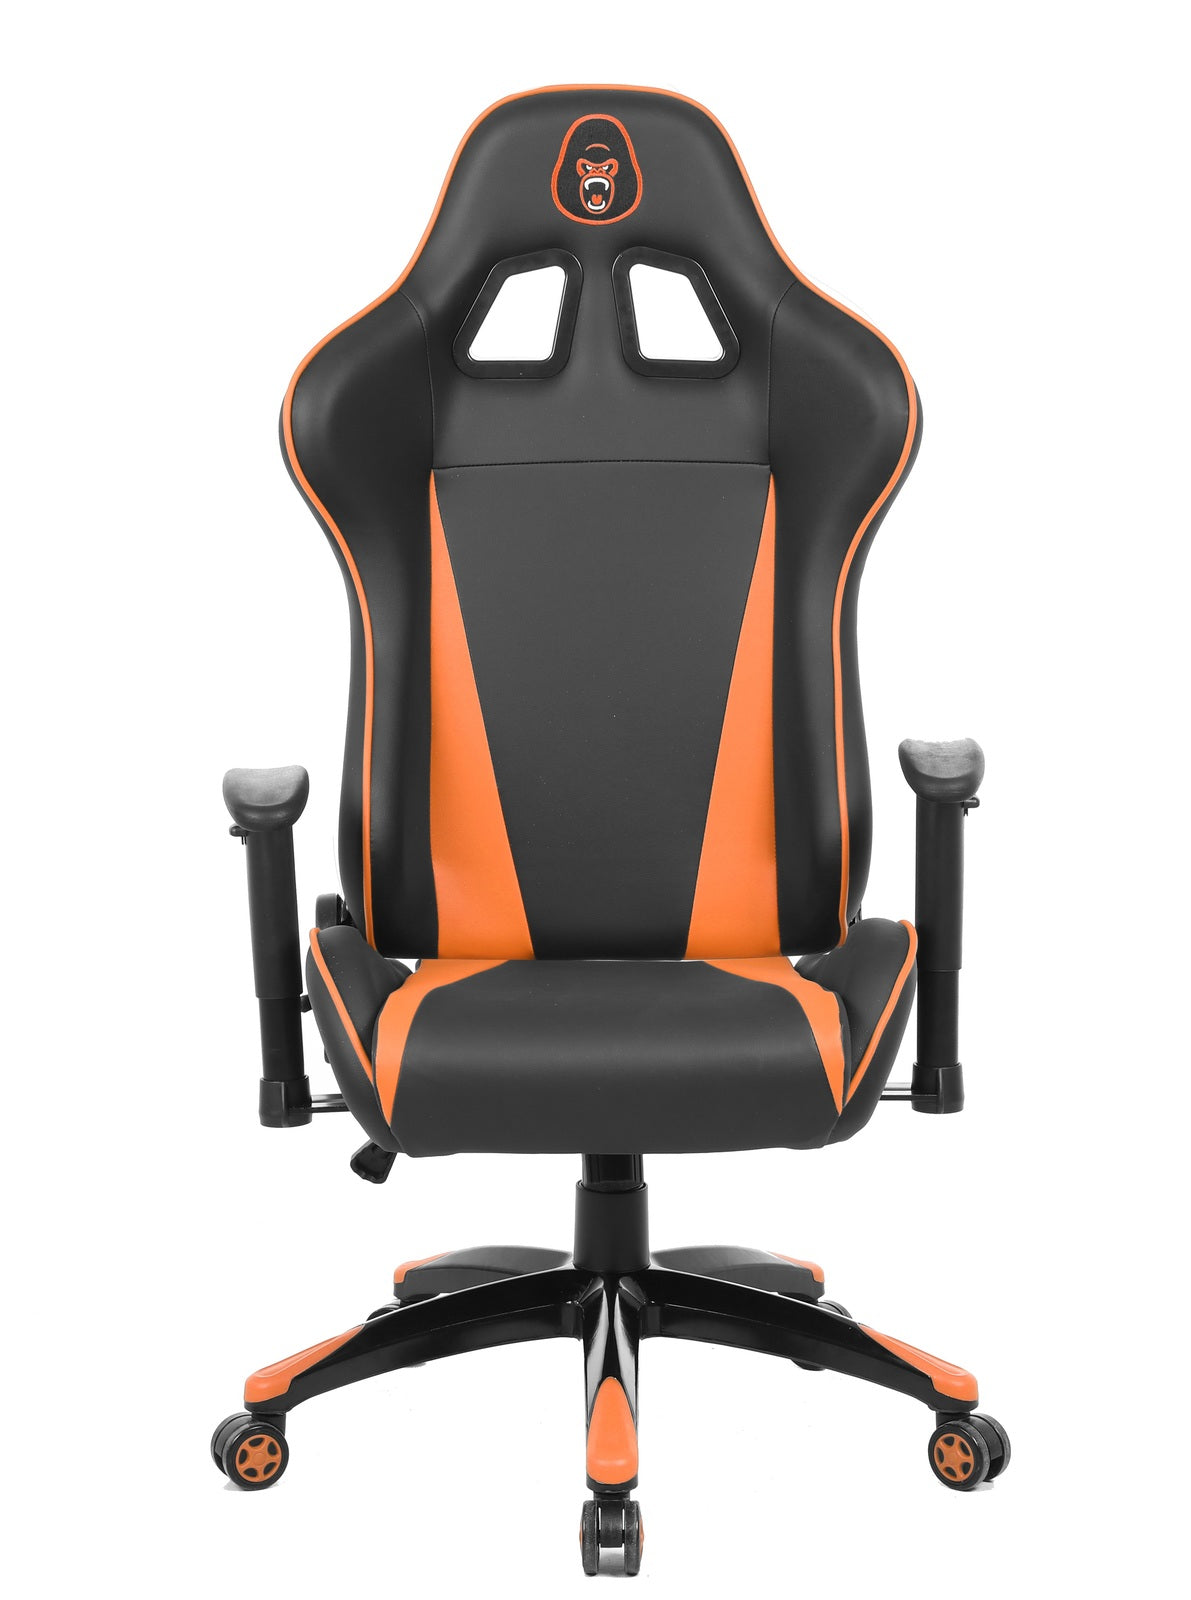 Gorilla Gaming Commander Chair - Orange & Black